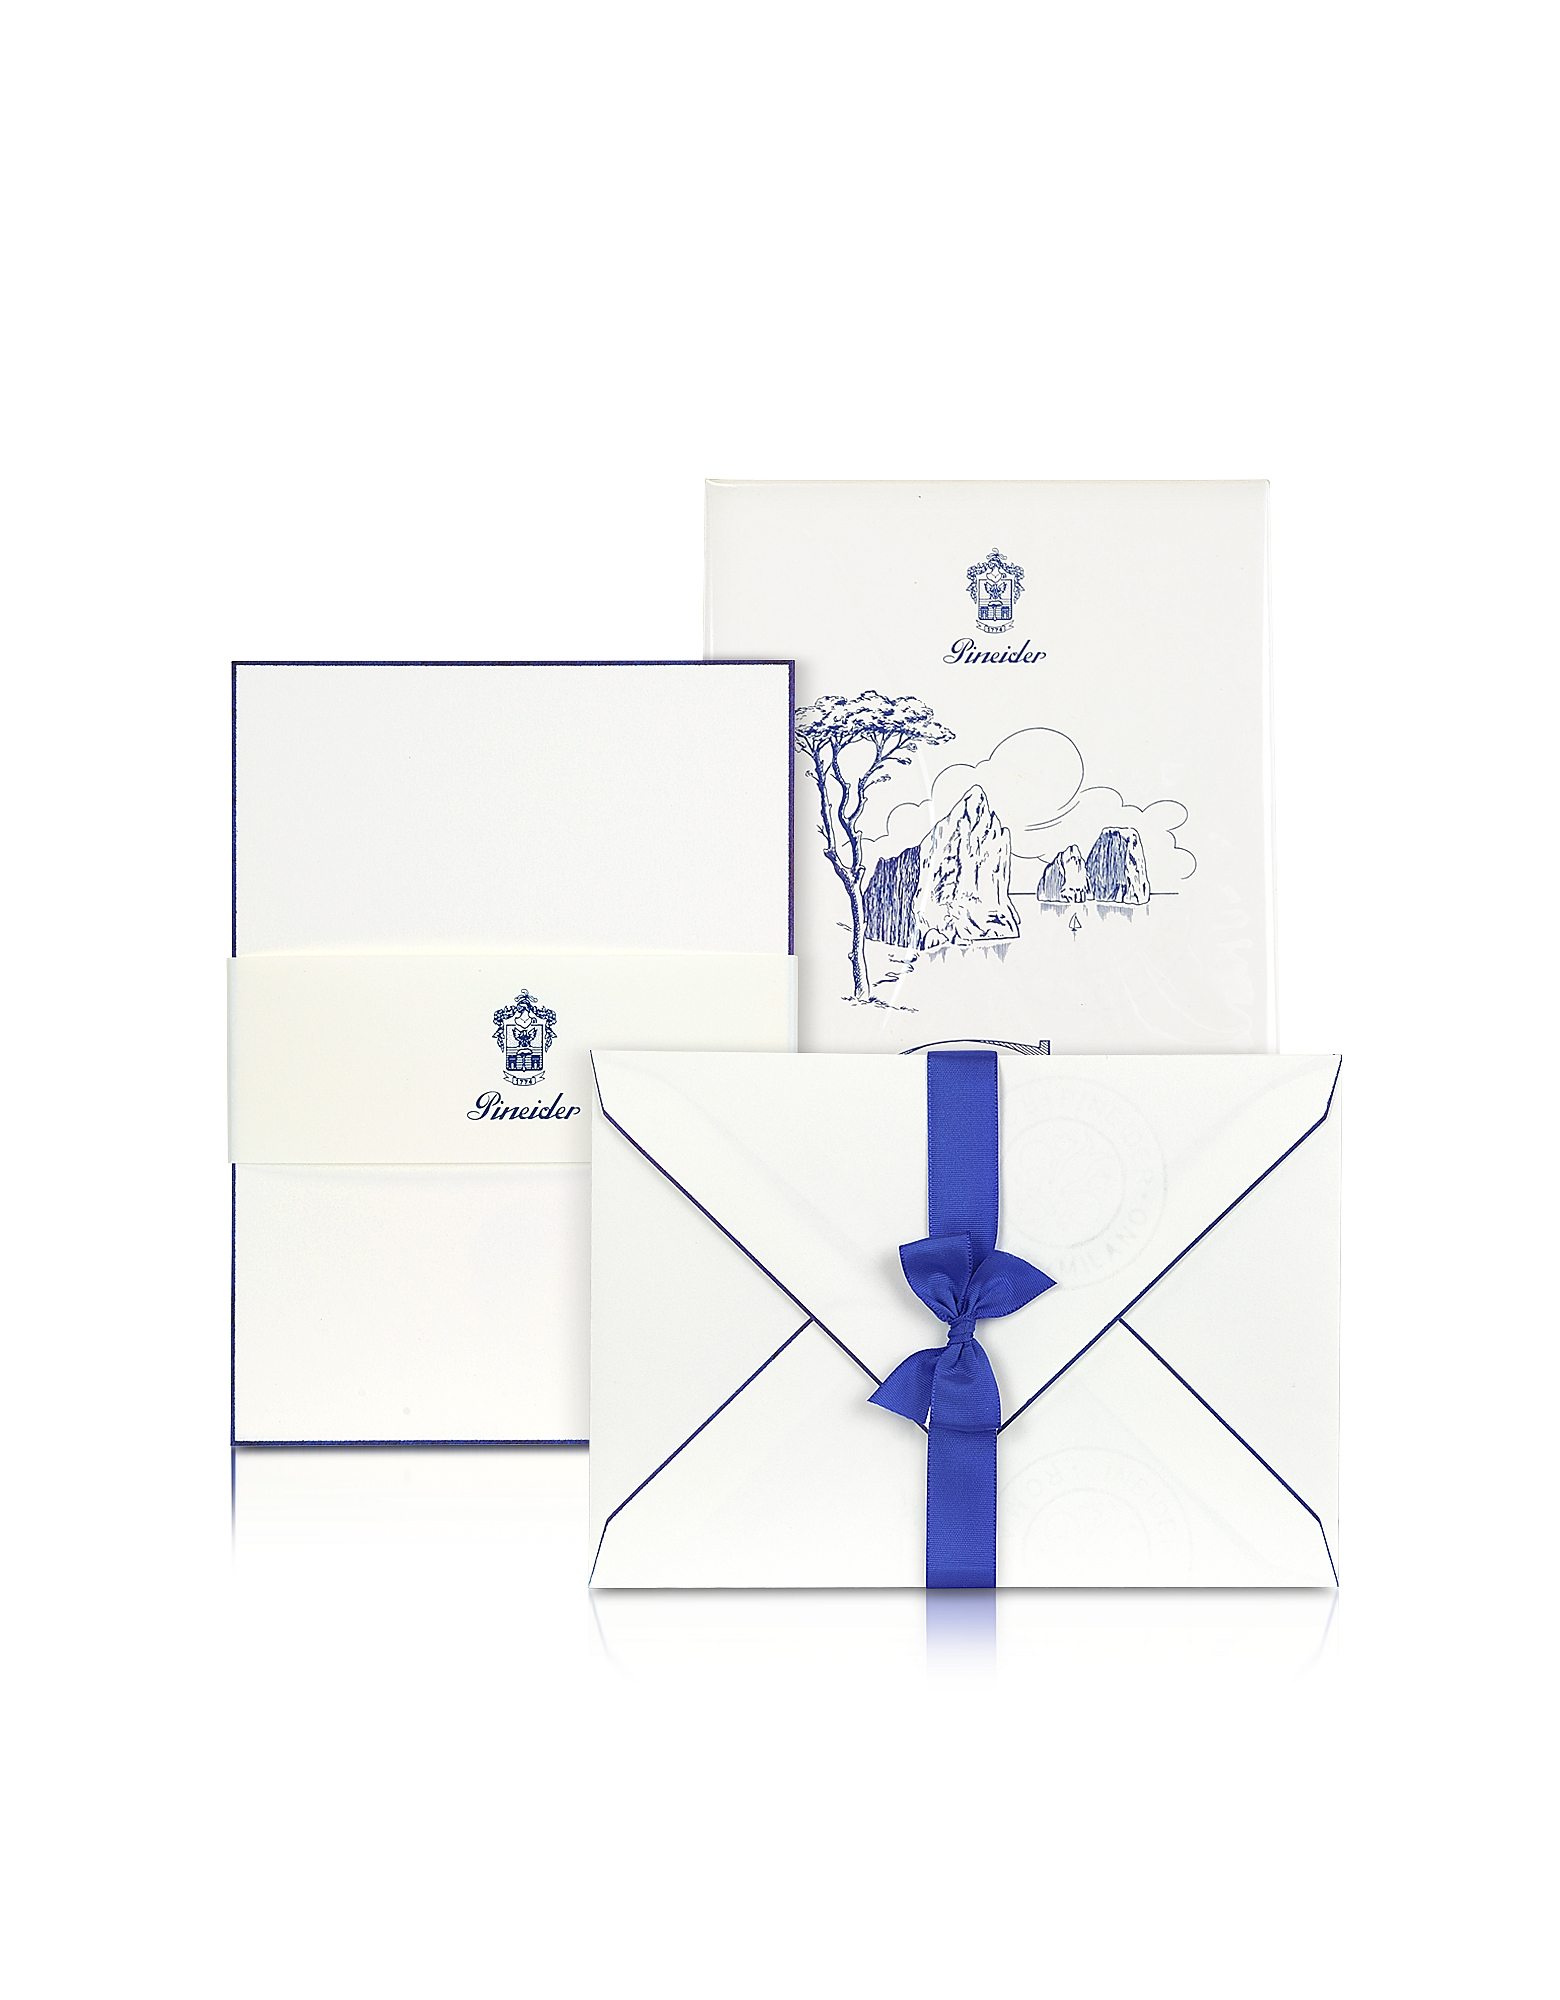 Pineider Desk Accessories, Capri - 25 White Cards with Handpainted Blue Border